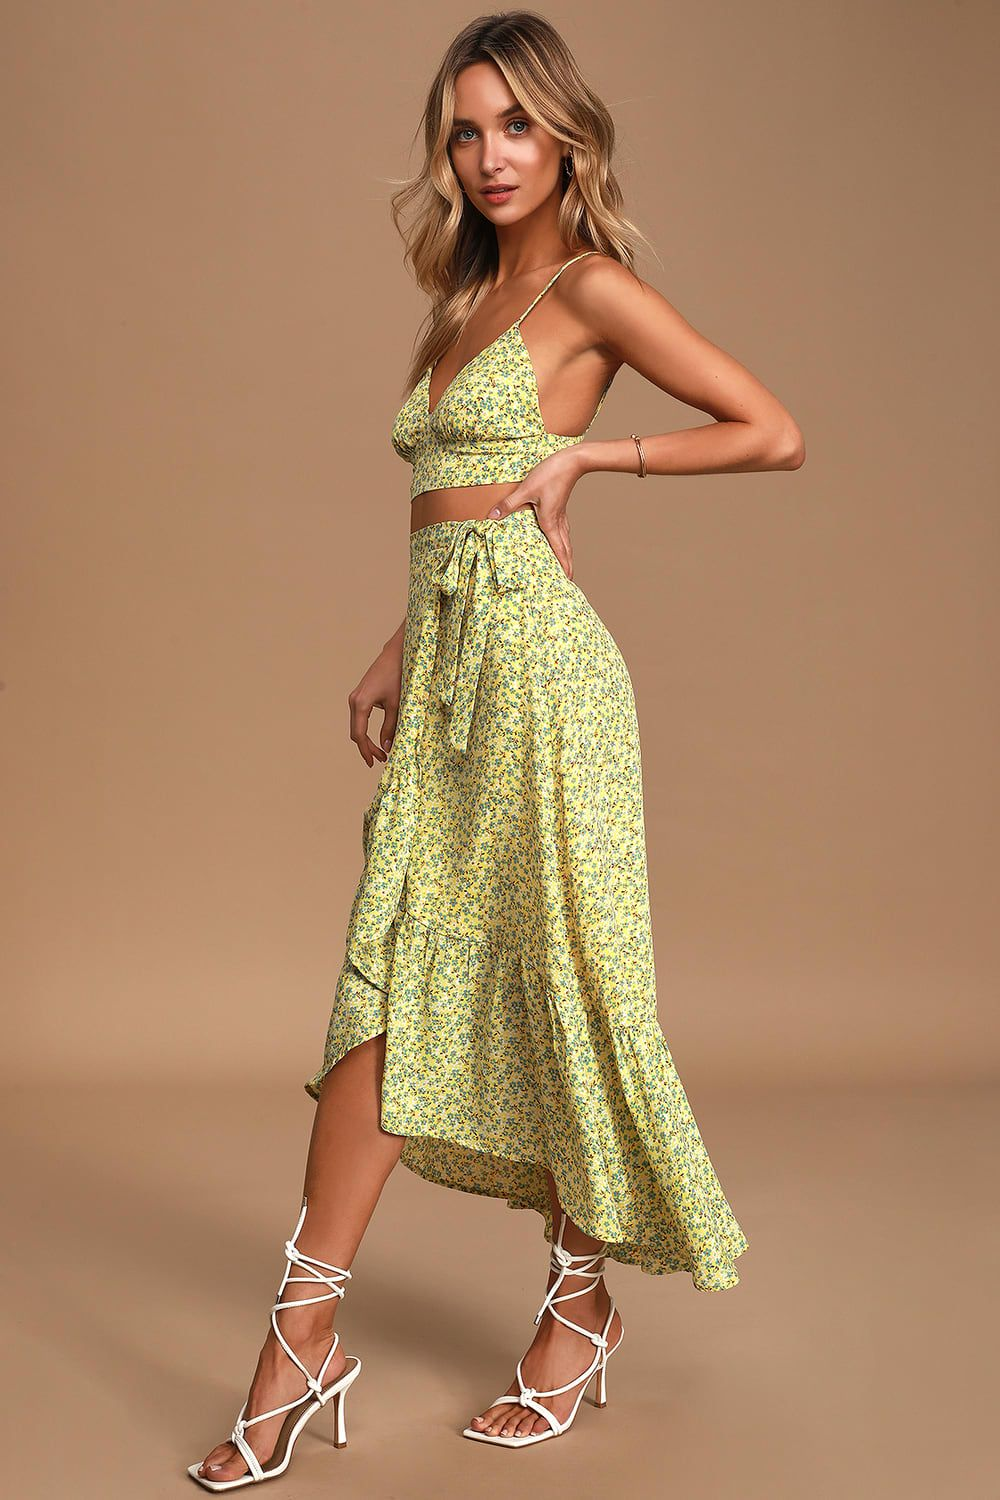 Believe In Me Yellow Floral Print Two Piece Midi Dress In 2021 Floral Dress Summer Dresses Piece Dress [ 1500 x 1000 Pixel ]